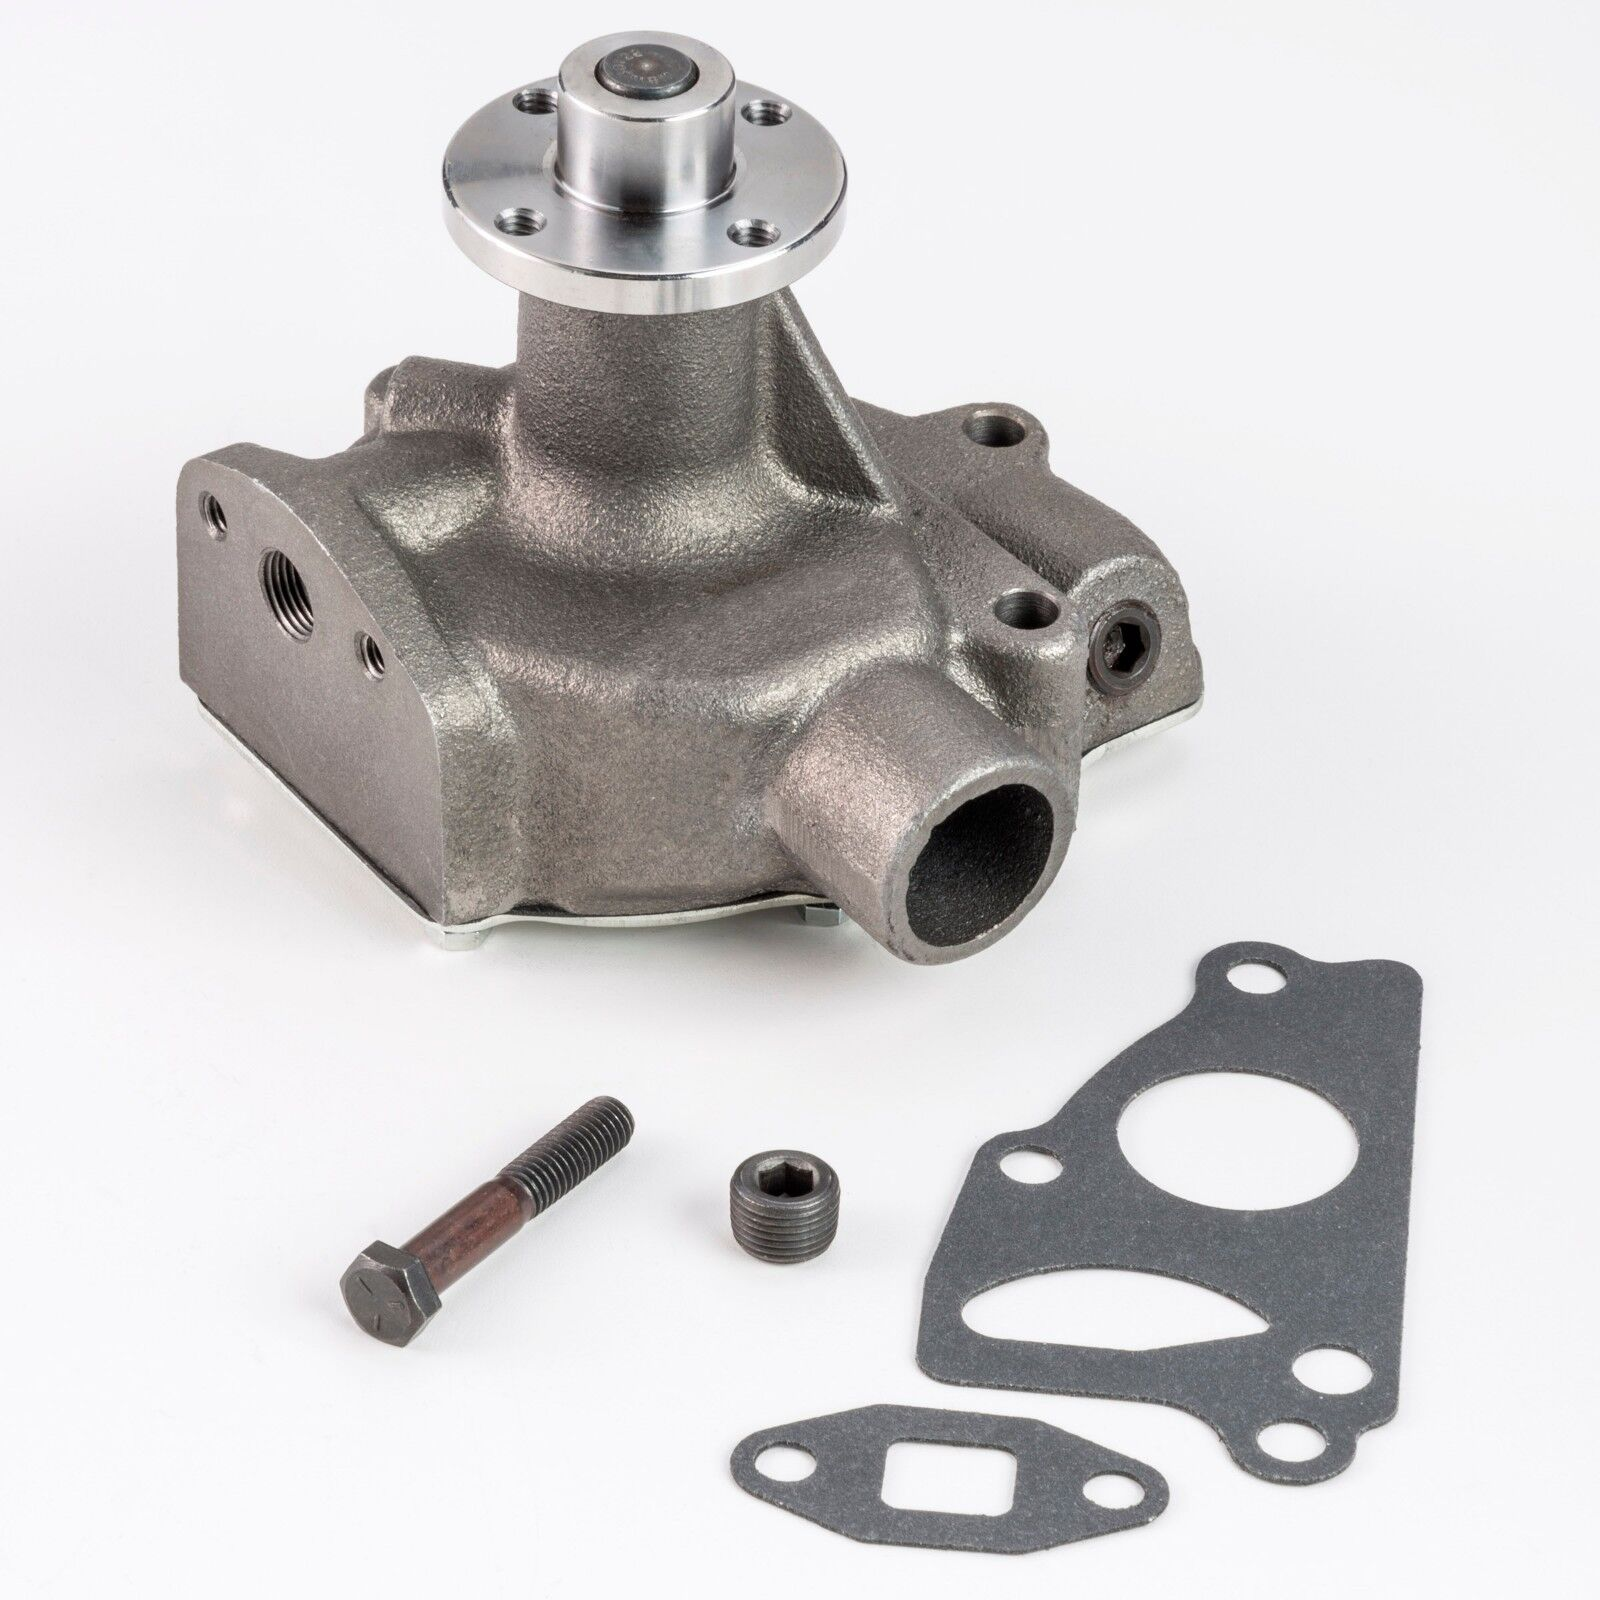 1946 1947 1948 1949 PLYMOUTH /& DODGE By PASS Water Pump SPECIAL DELUXE P15 P18